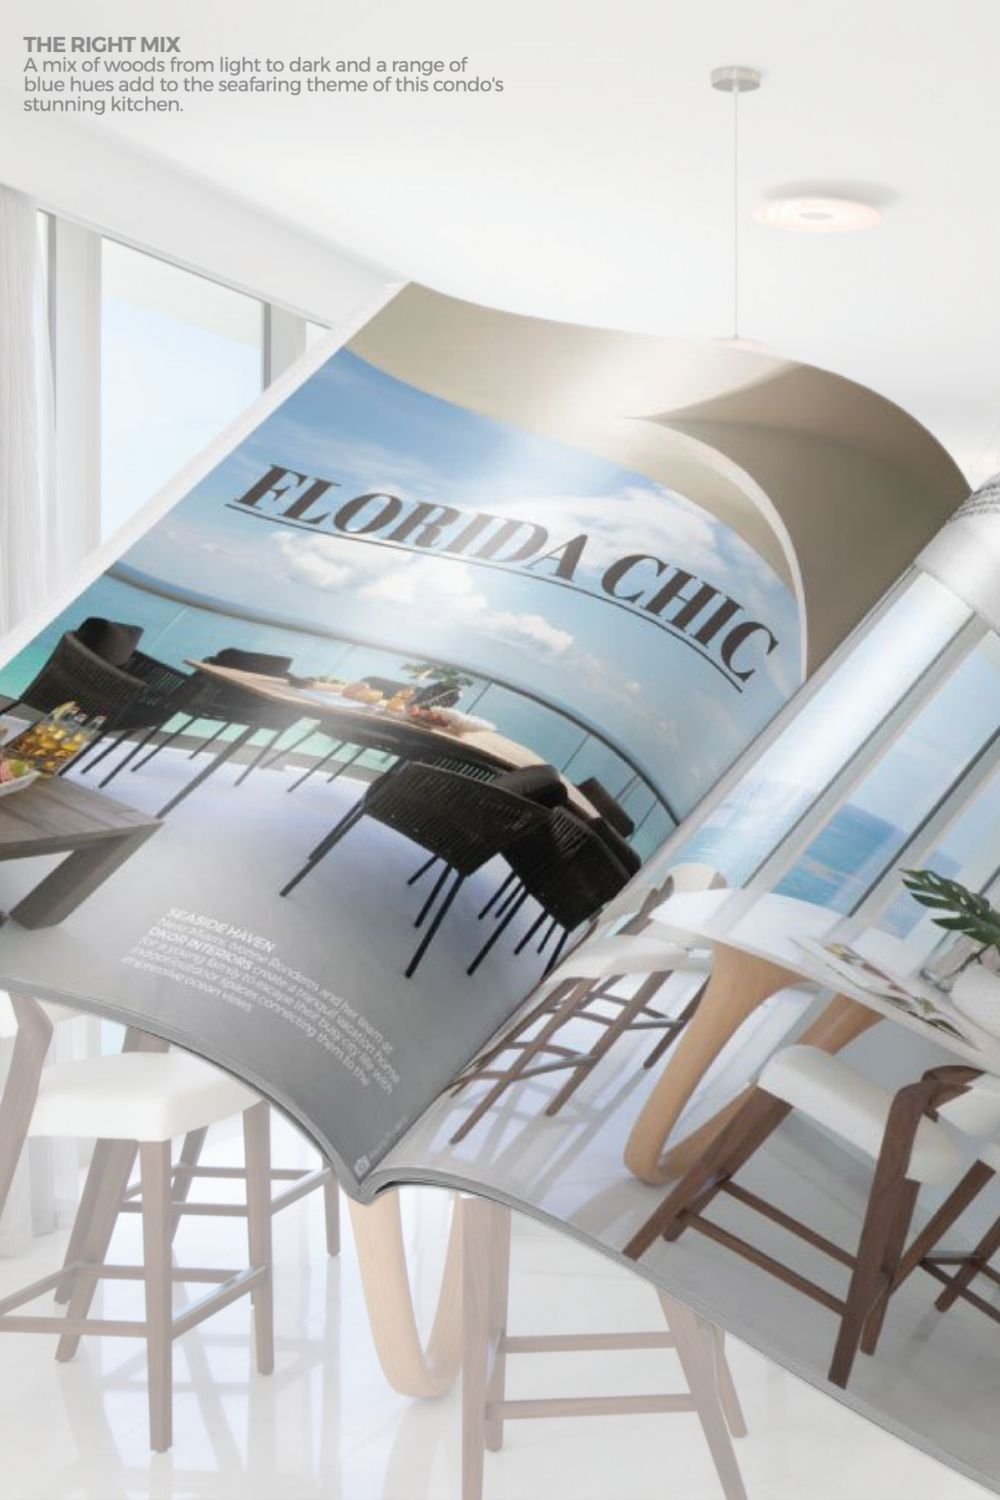 DKOR Interiors featured in the Summer 2021 edition of Seasonal Living Magazine